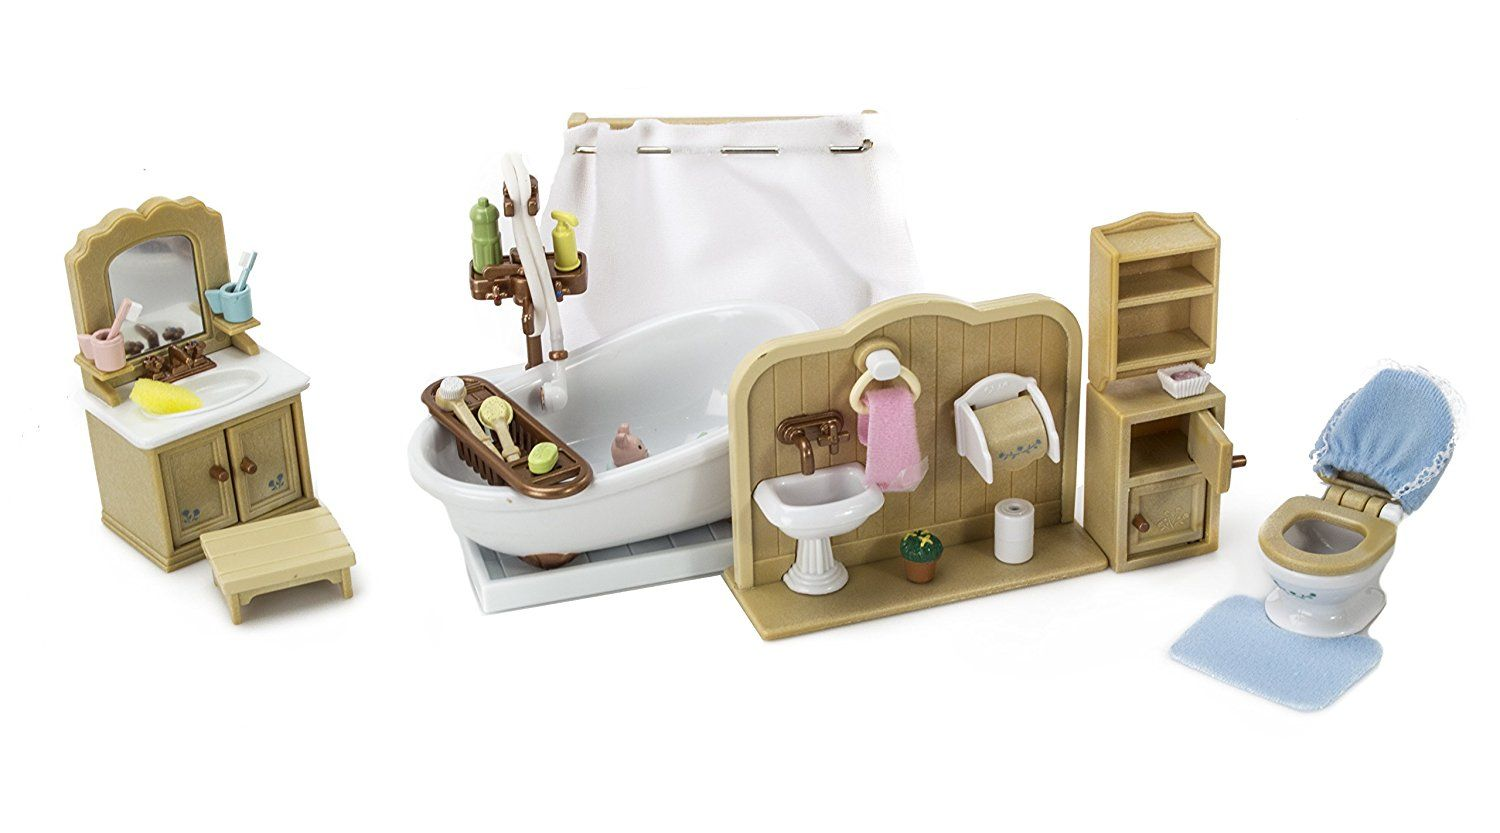 Amazon.com: Calico Critters Koala Family with Bathroom Set: Toys ...